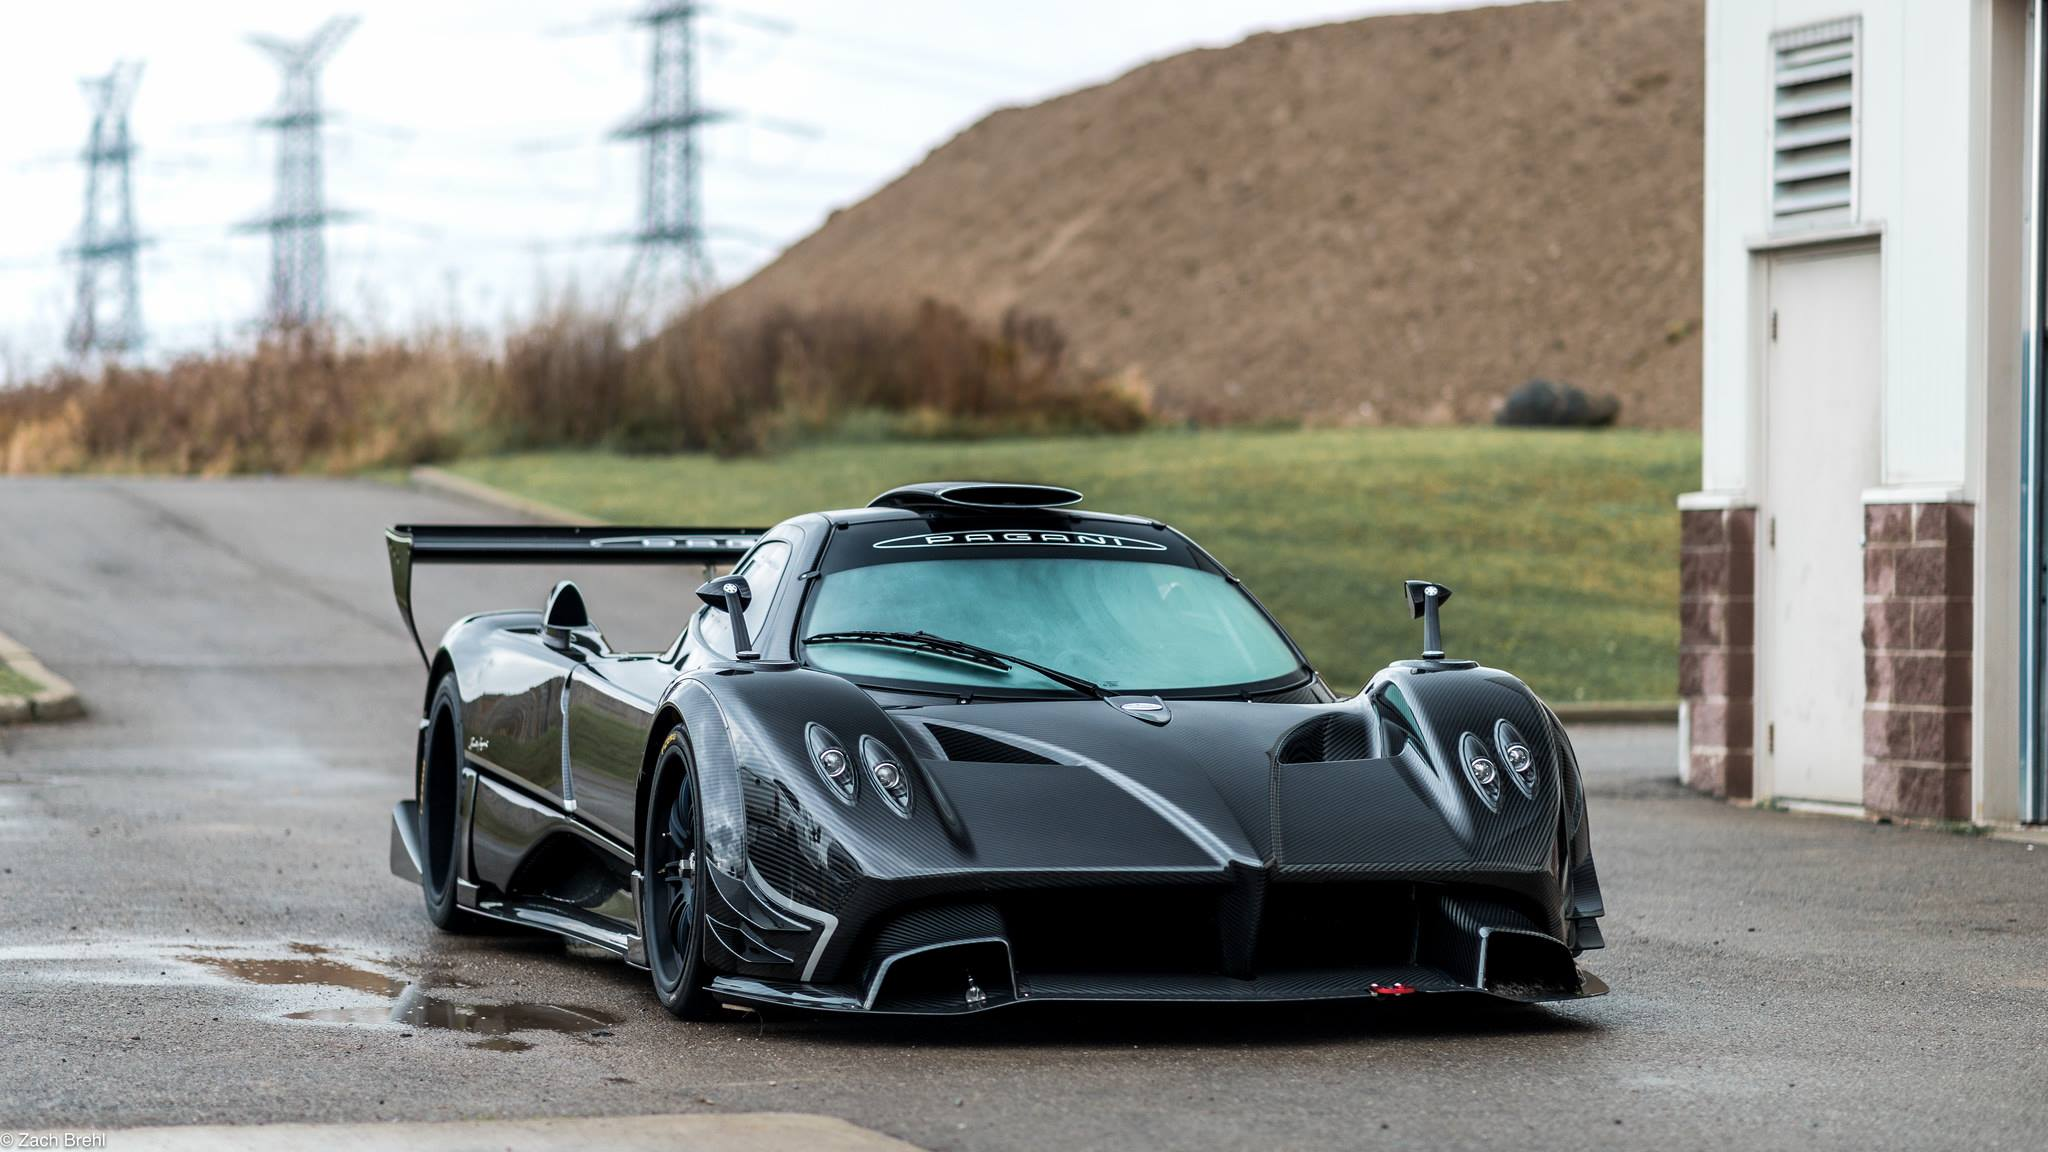 pagani zonda r and mclaren p1 gtr to rock ultracar 39 s paul ricard showdown gtspirit. Black Bedroom Furniture Sets. Home Design Ideas